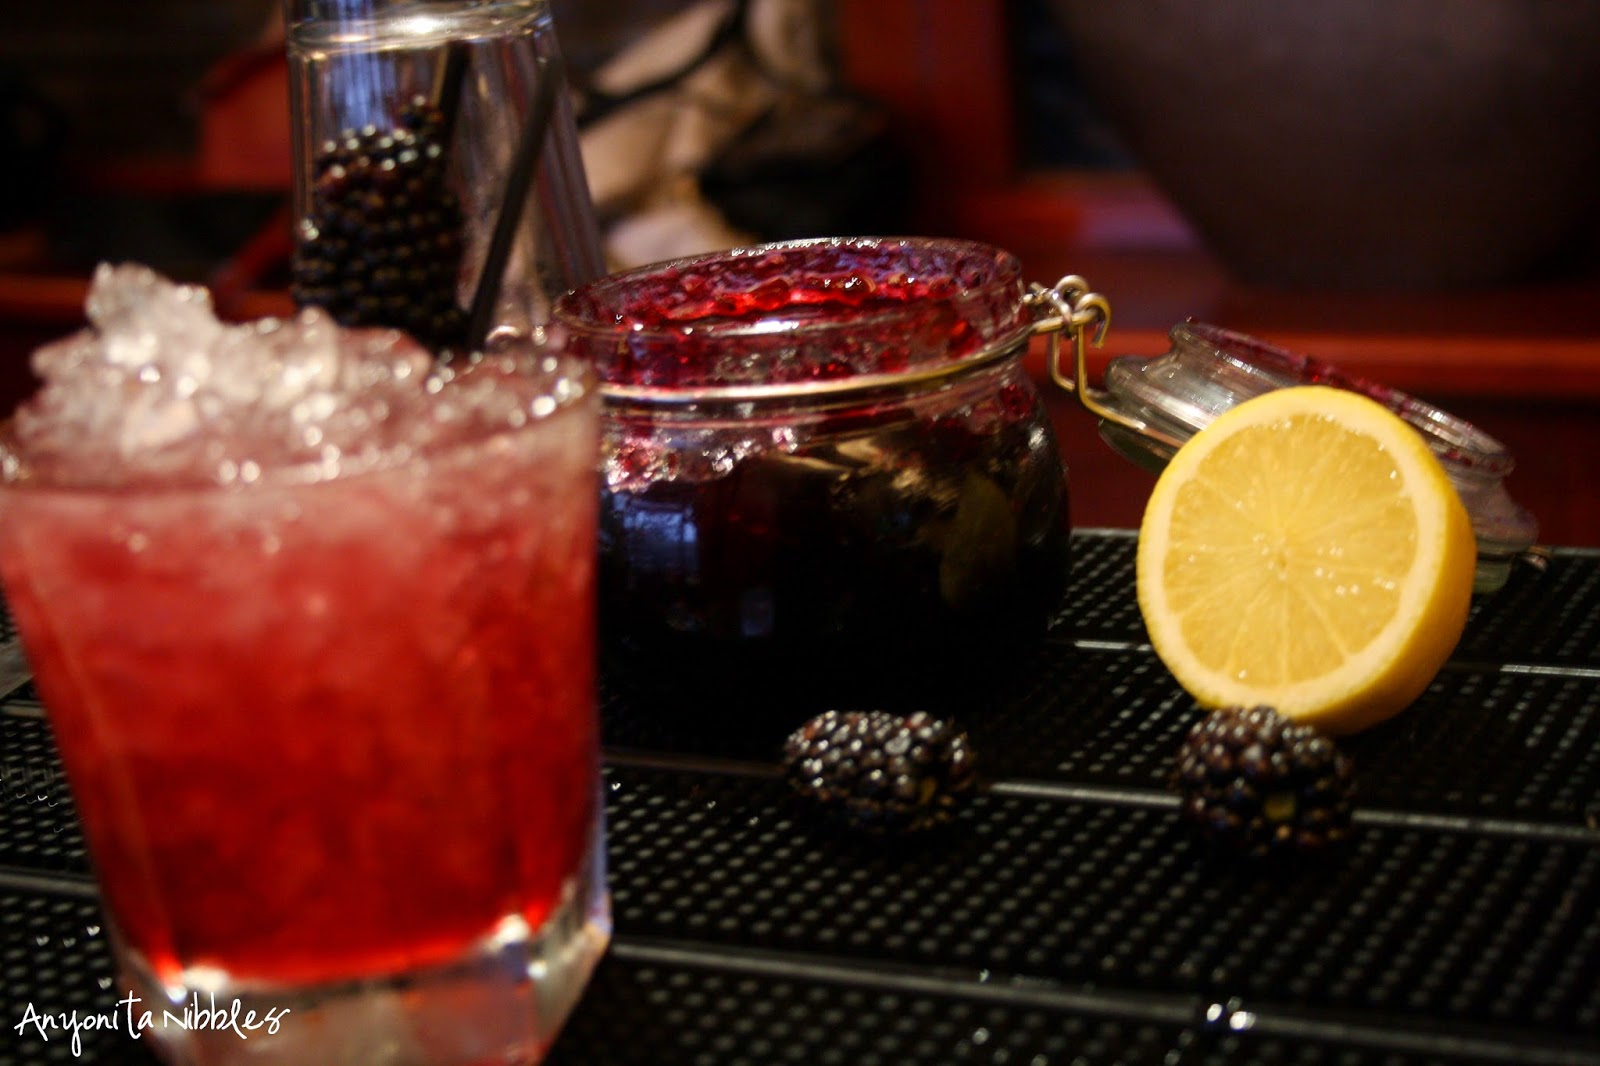 The main components of the Drunken Vimto are blackcurrant jam, blackberries and lemon juice. From Anyonita Nibbles